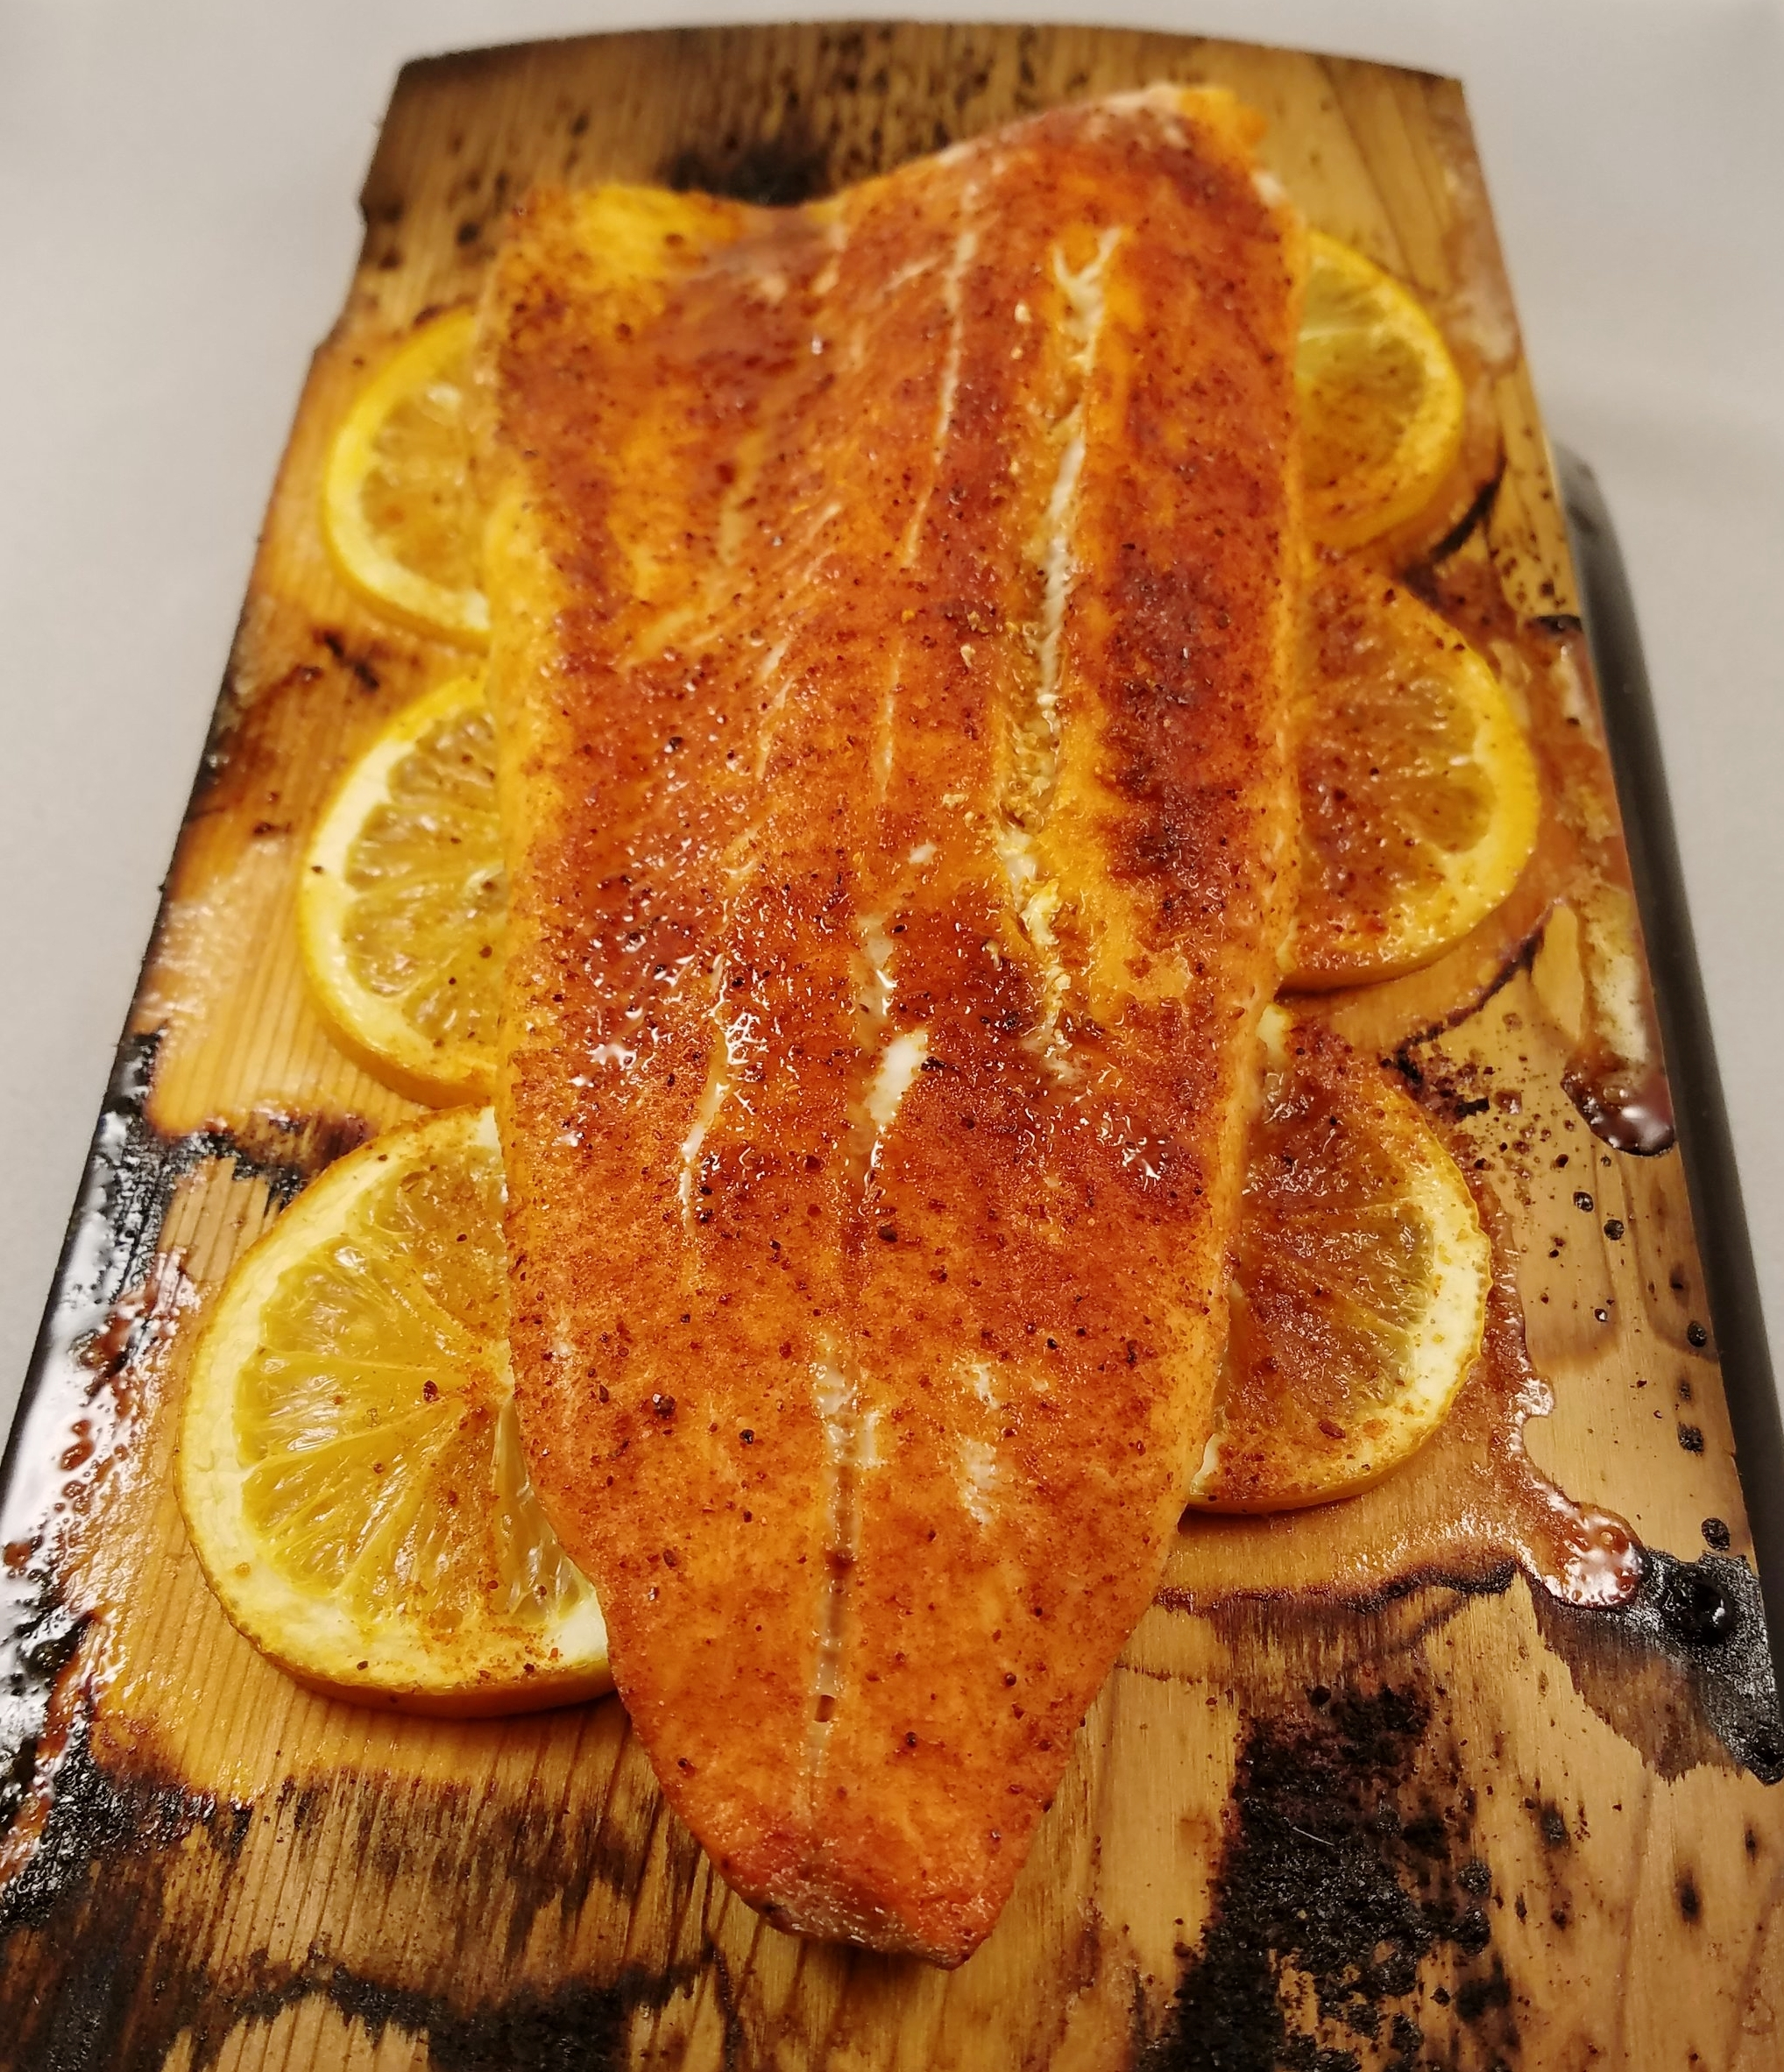 A beautiful farm-raised rainbow trout from Clear Springs Foods